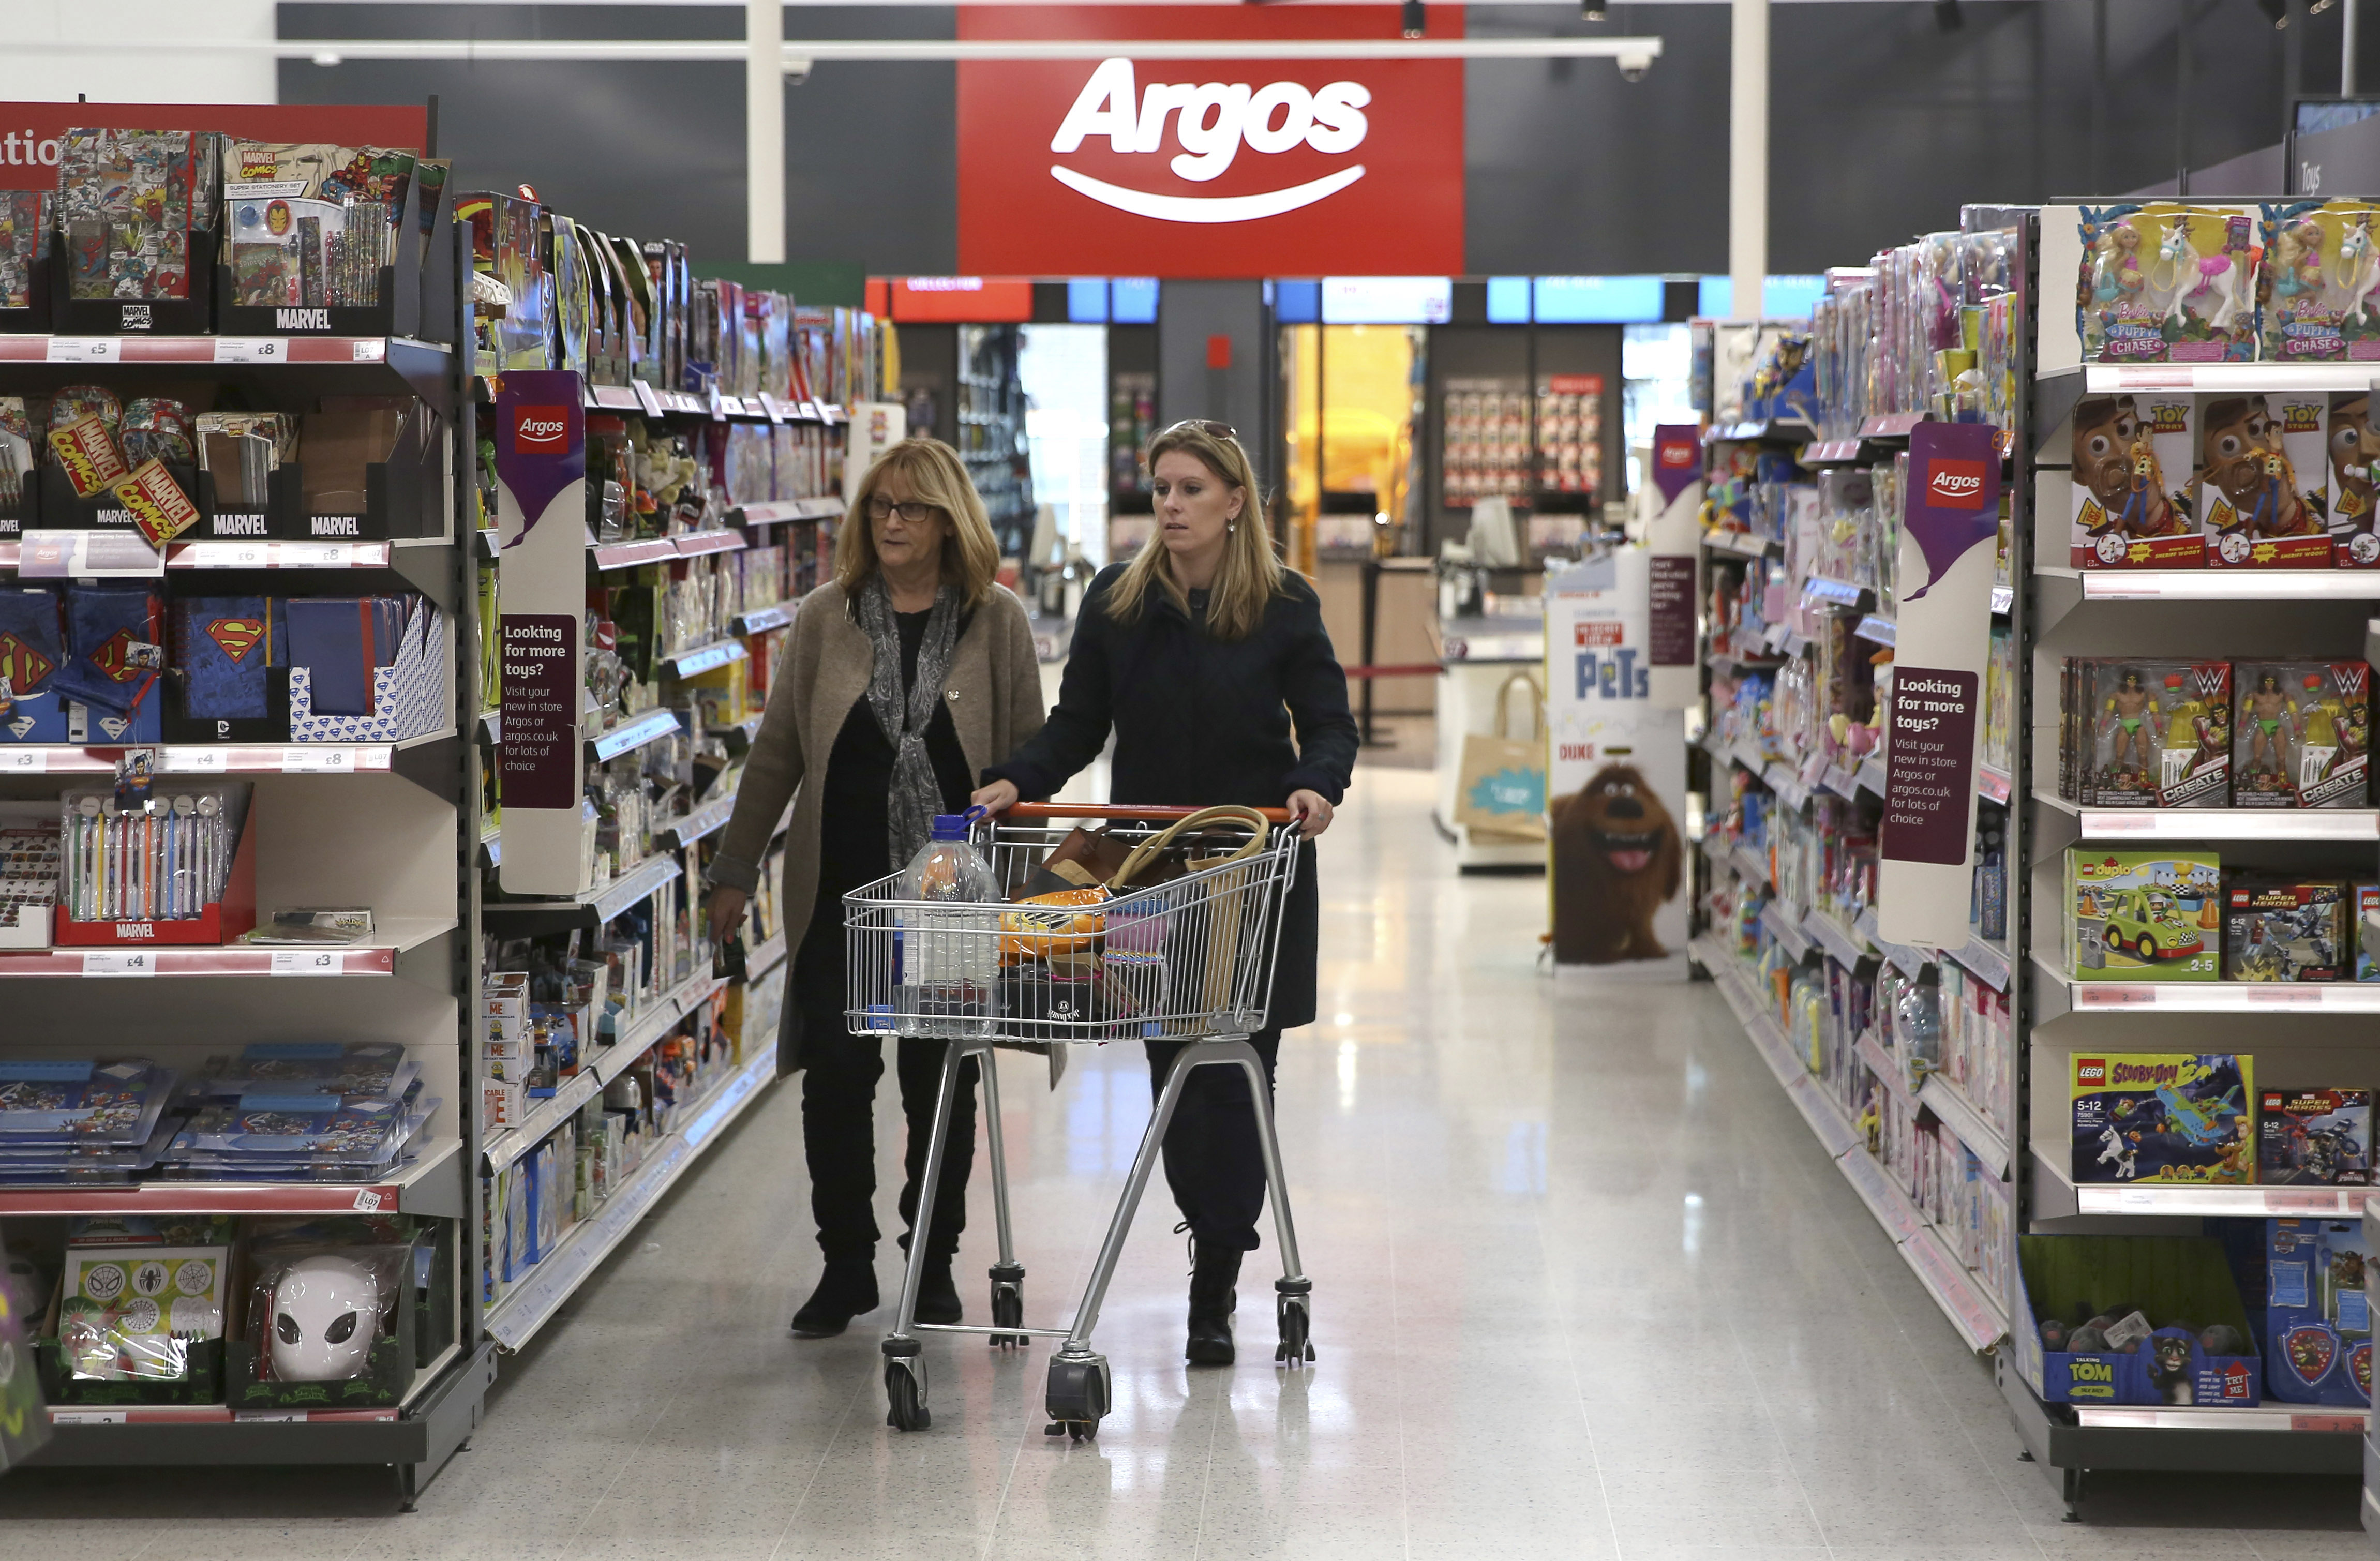 Argos plans to close its doors from Thursday as the new lockdown kicks in